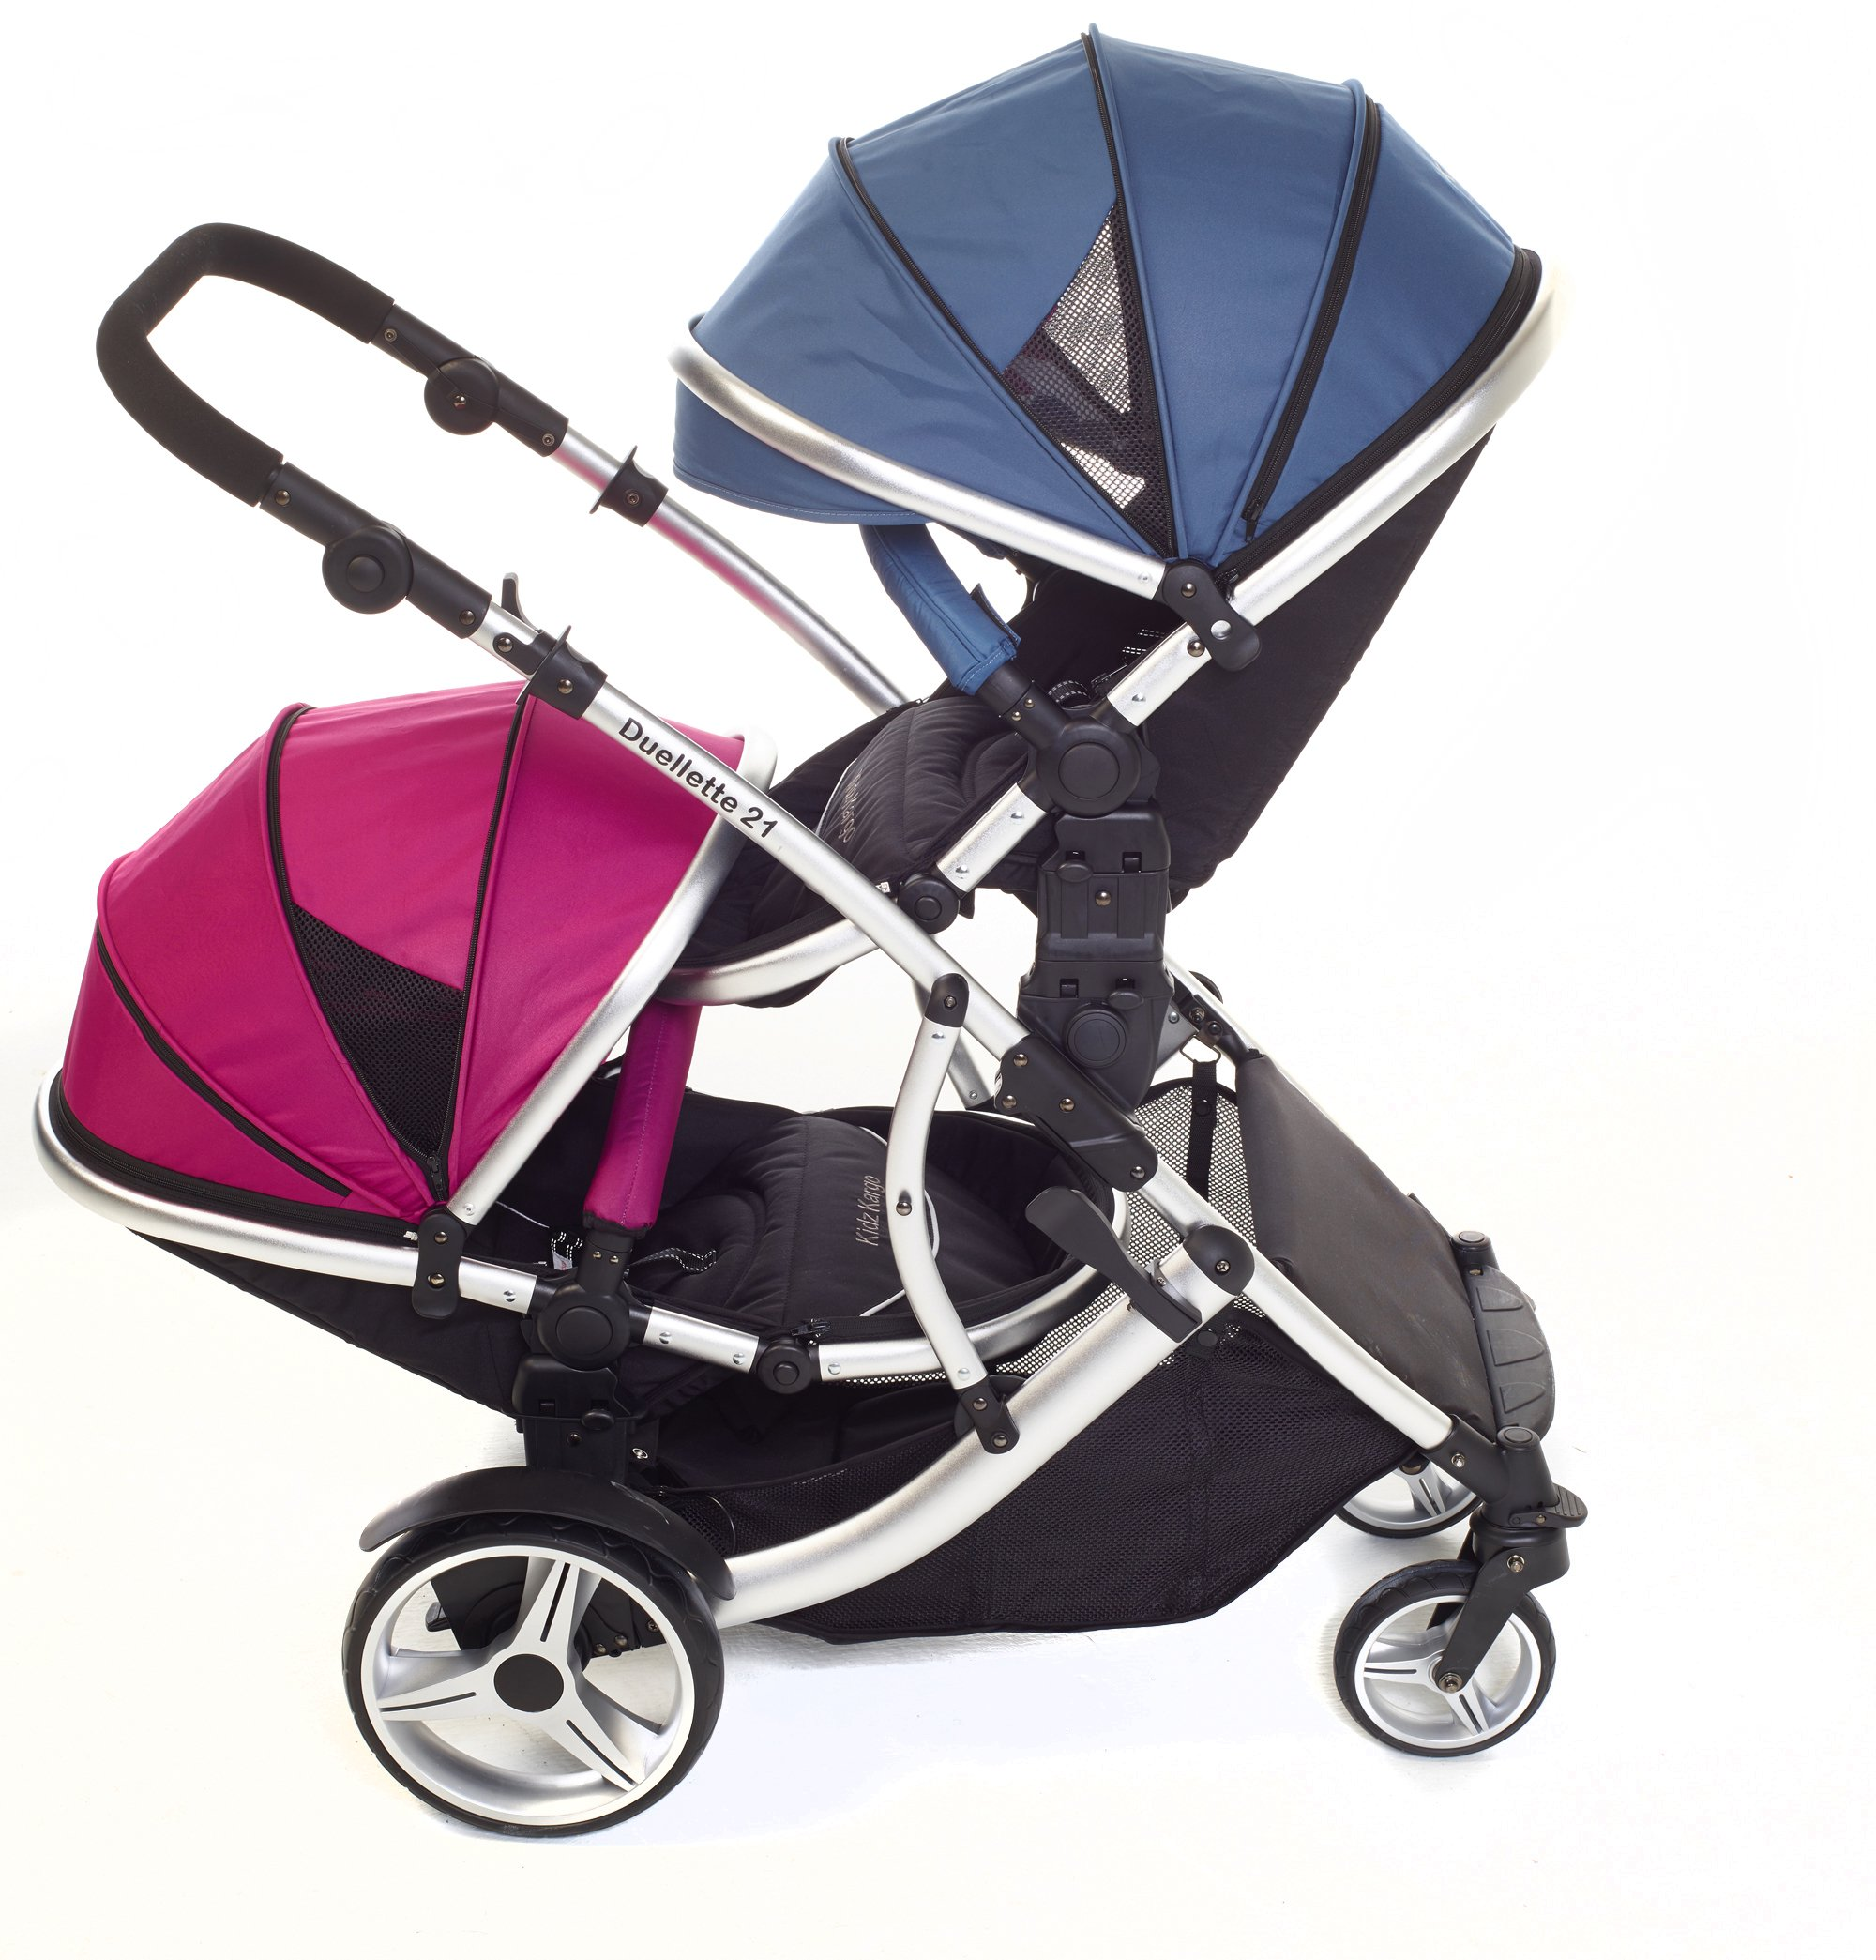 Kids Kargo Duellette 21 BS Travel System Pram Double Pushchair (Raspberry and Blueberry) Kids Kargo Suitability Newborn Twins (if used with car seats) or Newborn/toddler. Various seat positions. Both seats can face mum (ideal for twins) Accommodates 1 or 2 car seats 2